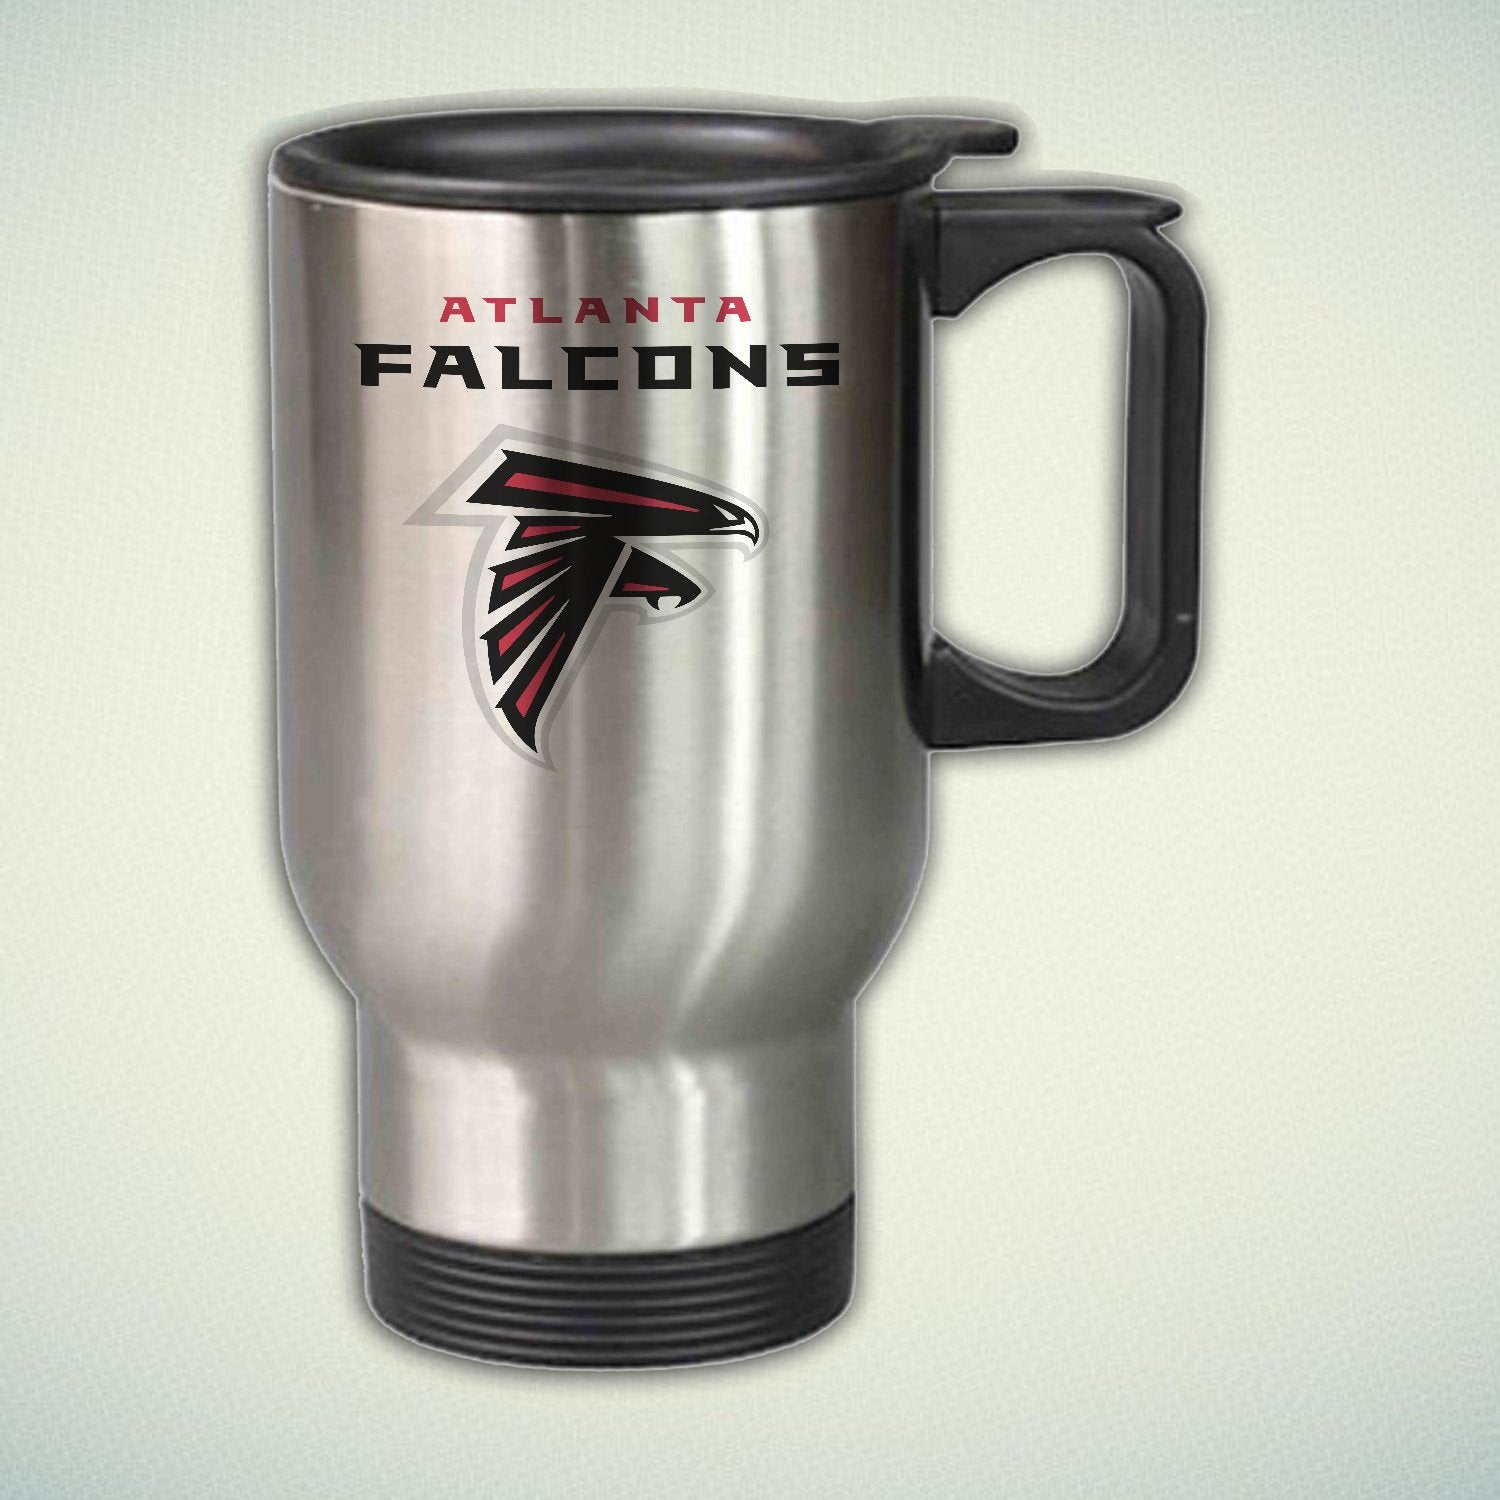 Atlanta Falcons Logo 14oz Stainless Steel Travel Mug